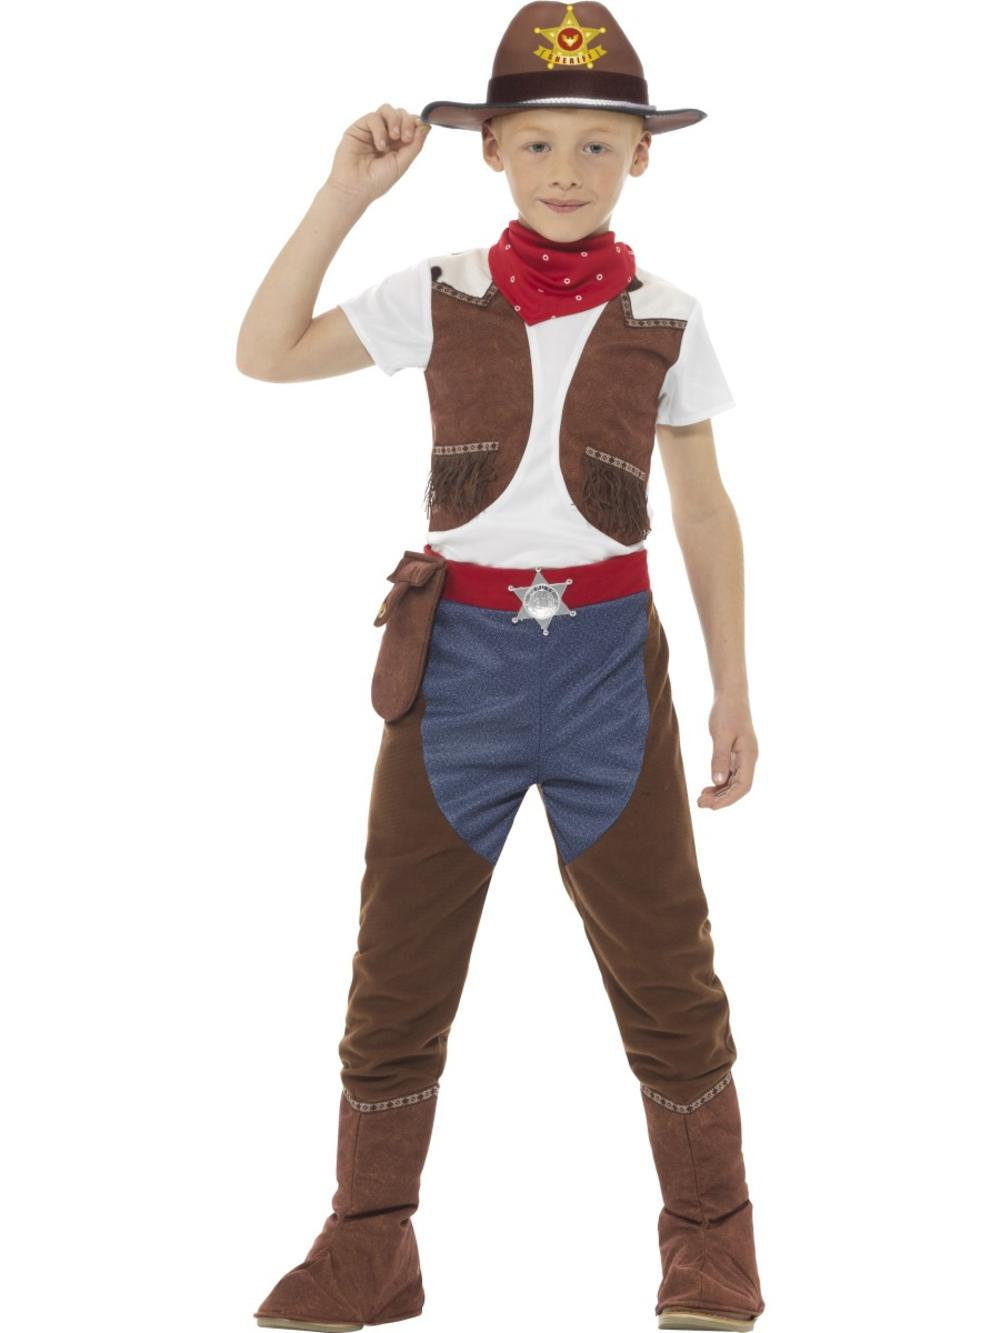 Deluxe Cowboy Boys Fancy Dress Wild West Sheriff Rodeo Book Day Childs Costume